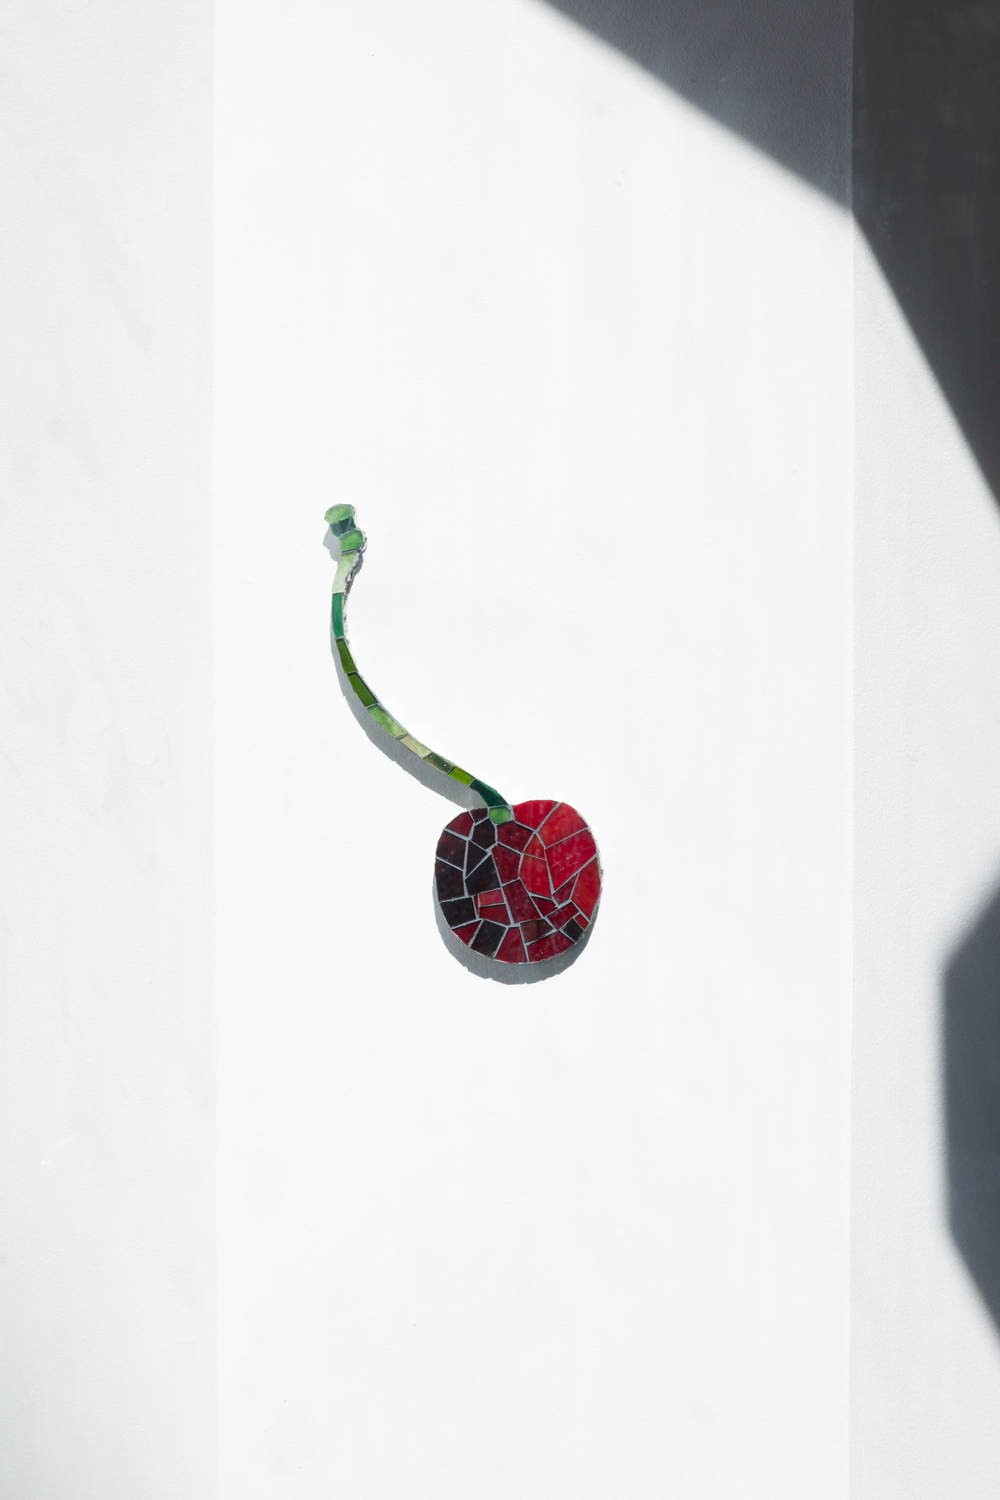 Ming Fay: Shad Crossing, Delancey, Orchard, 2004 (Cherry), 2016, Glass, grout, honeycomb aluminum, panel, 25.4 x 17.8 cm, 10 x 7 inches